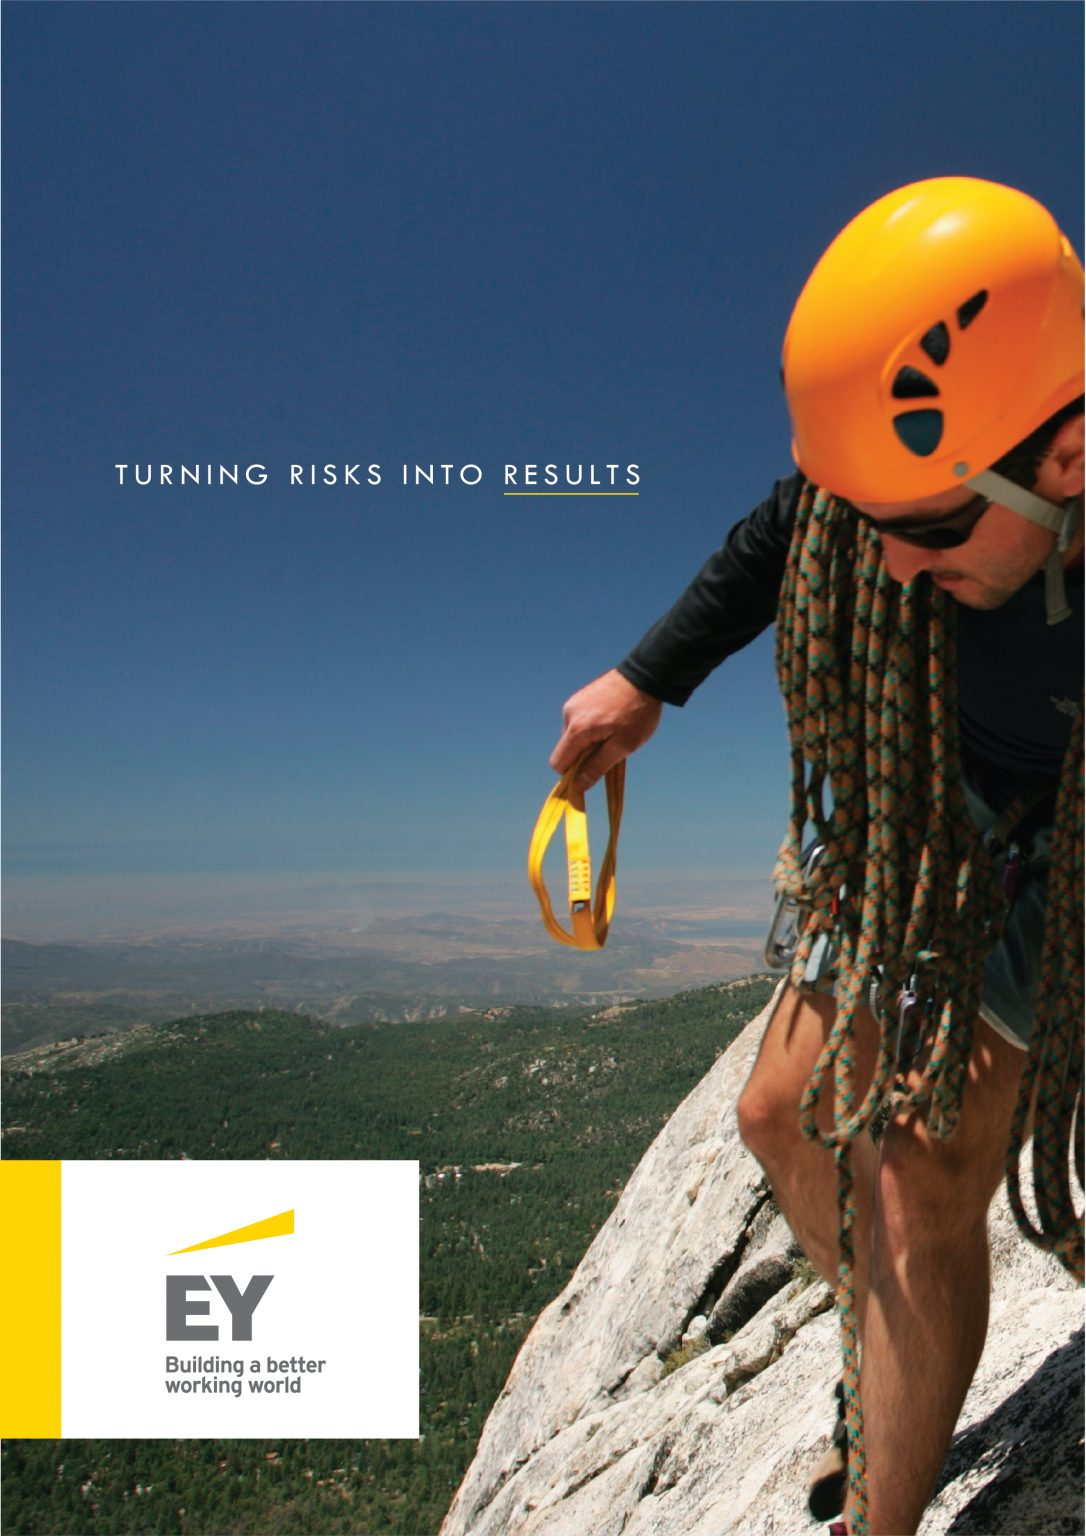 Ernst and young cover design